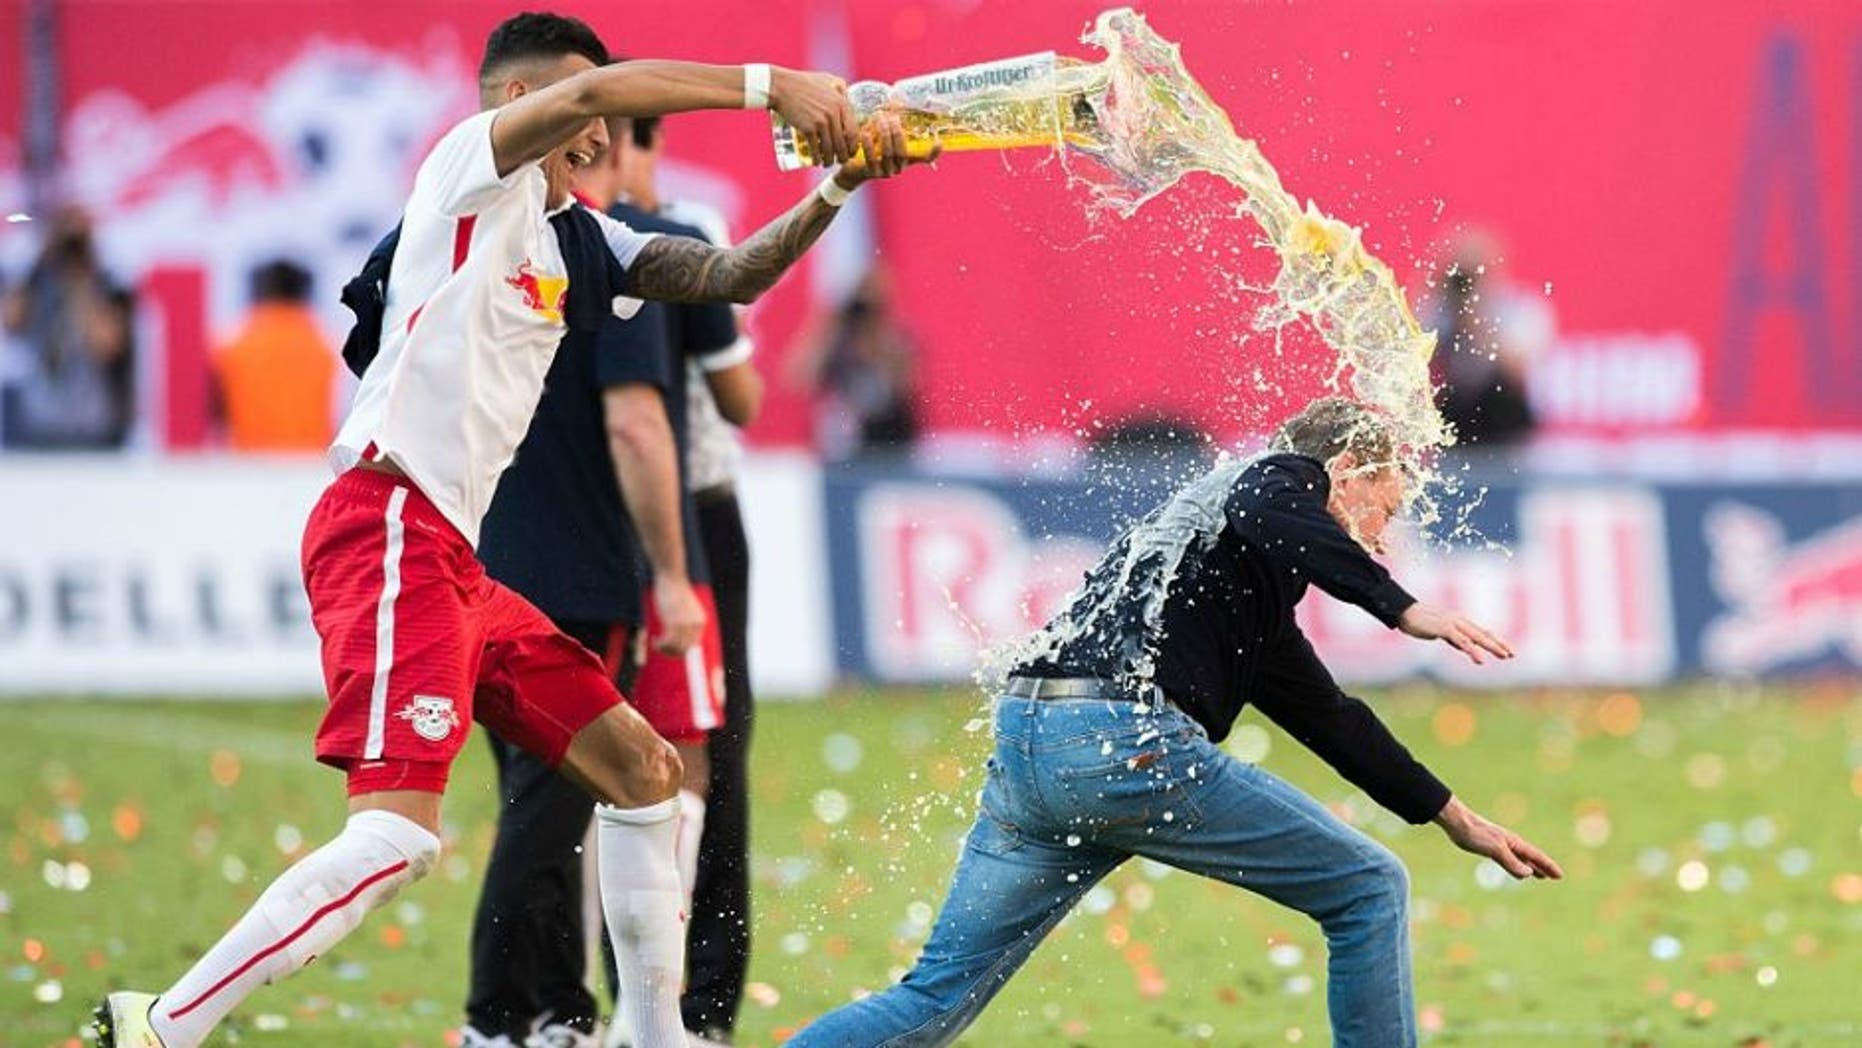 Leipzig��s Davie Selke (L) pours beer over headcoach Ralf Rangnick after the German second division Bundesliga football match between RB Leipzig and Karlsruher SC at the Red Bull Arena in Leipzig, eastern Germany, on May 8, 2016. Leipzig won the match 2-0 and will be promoted to the first division Bundesliga next season. / AFP / Robert MICHAEL (Photo credit should read ROBERT MICHAEL/AFP/Getty Images)